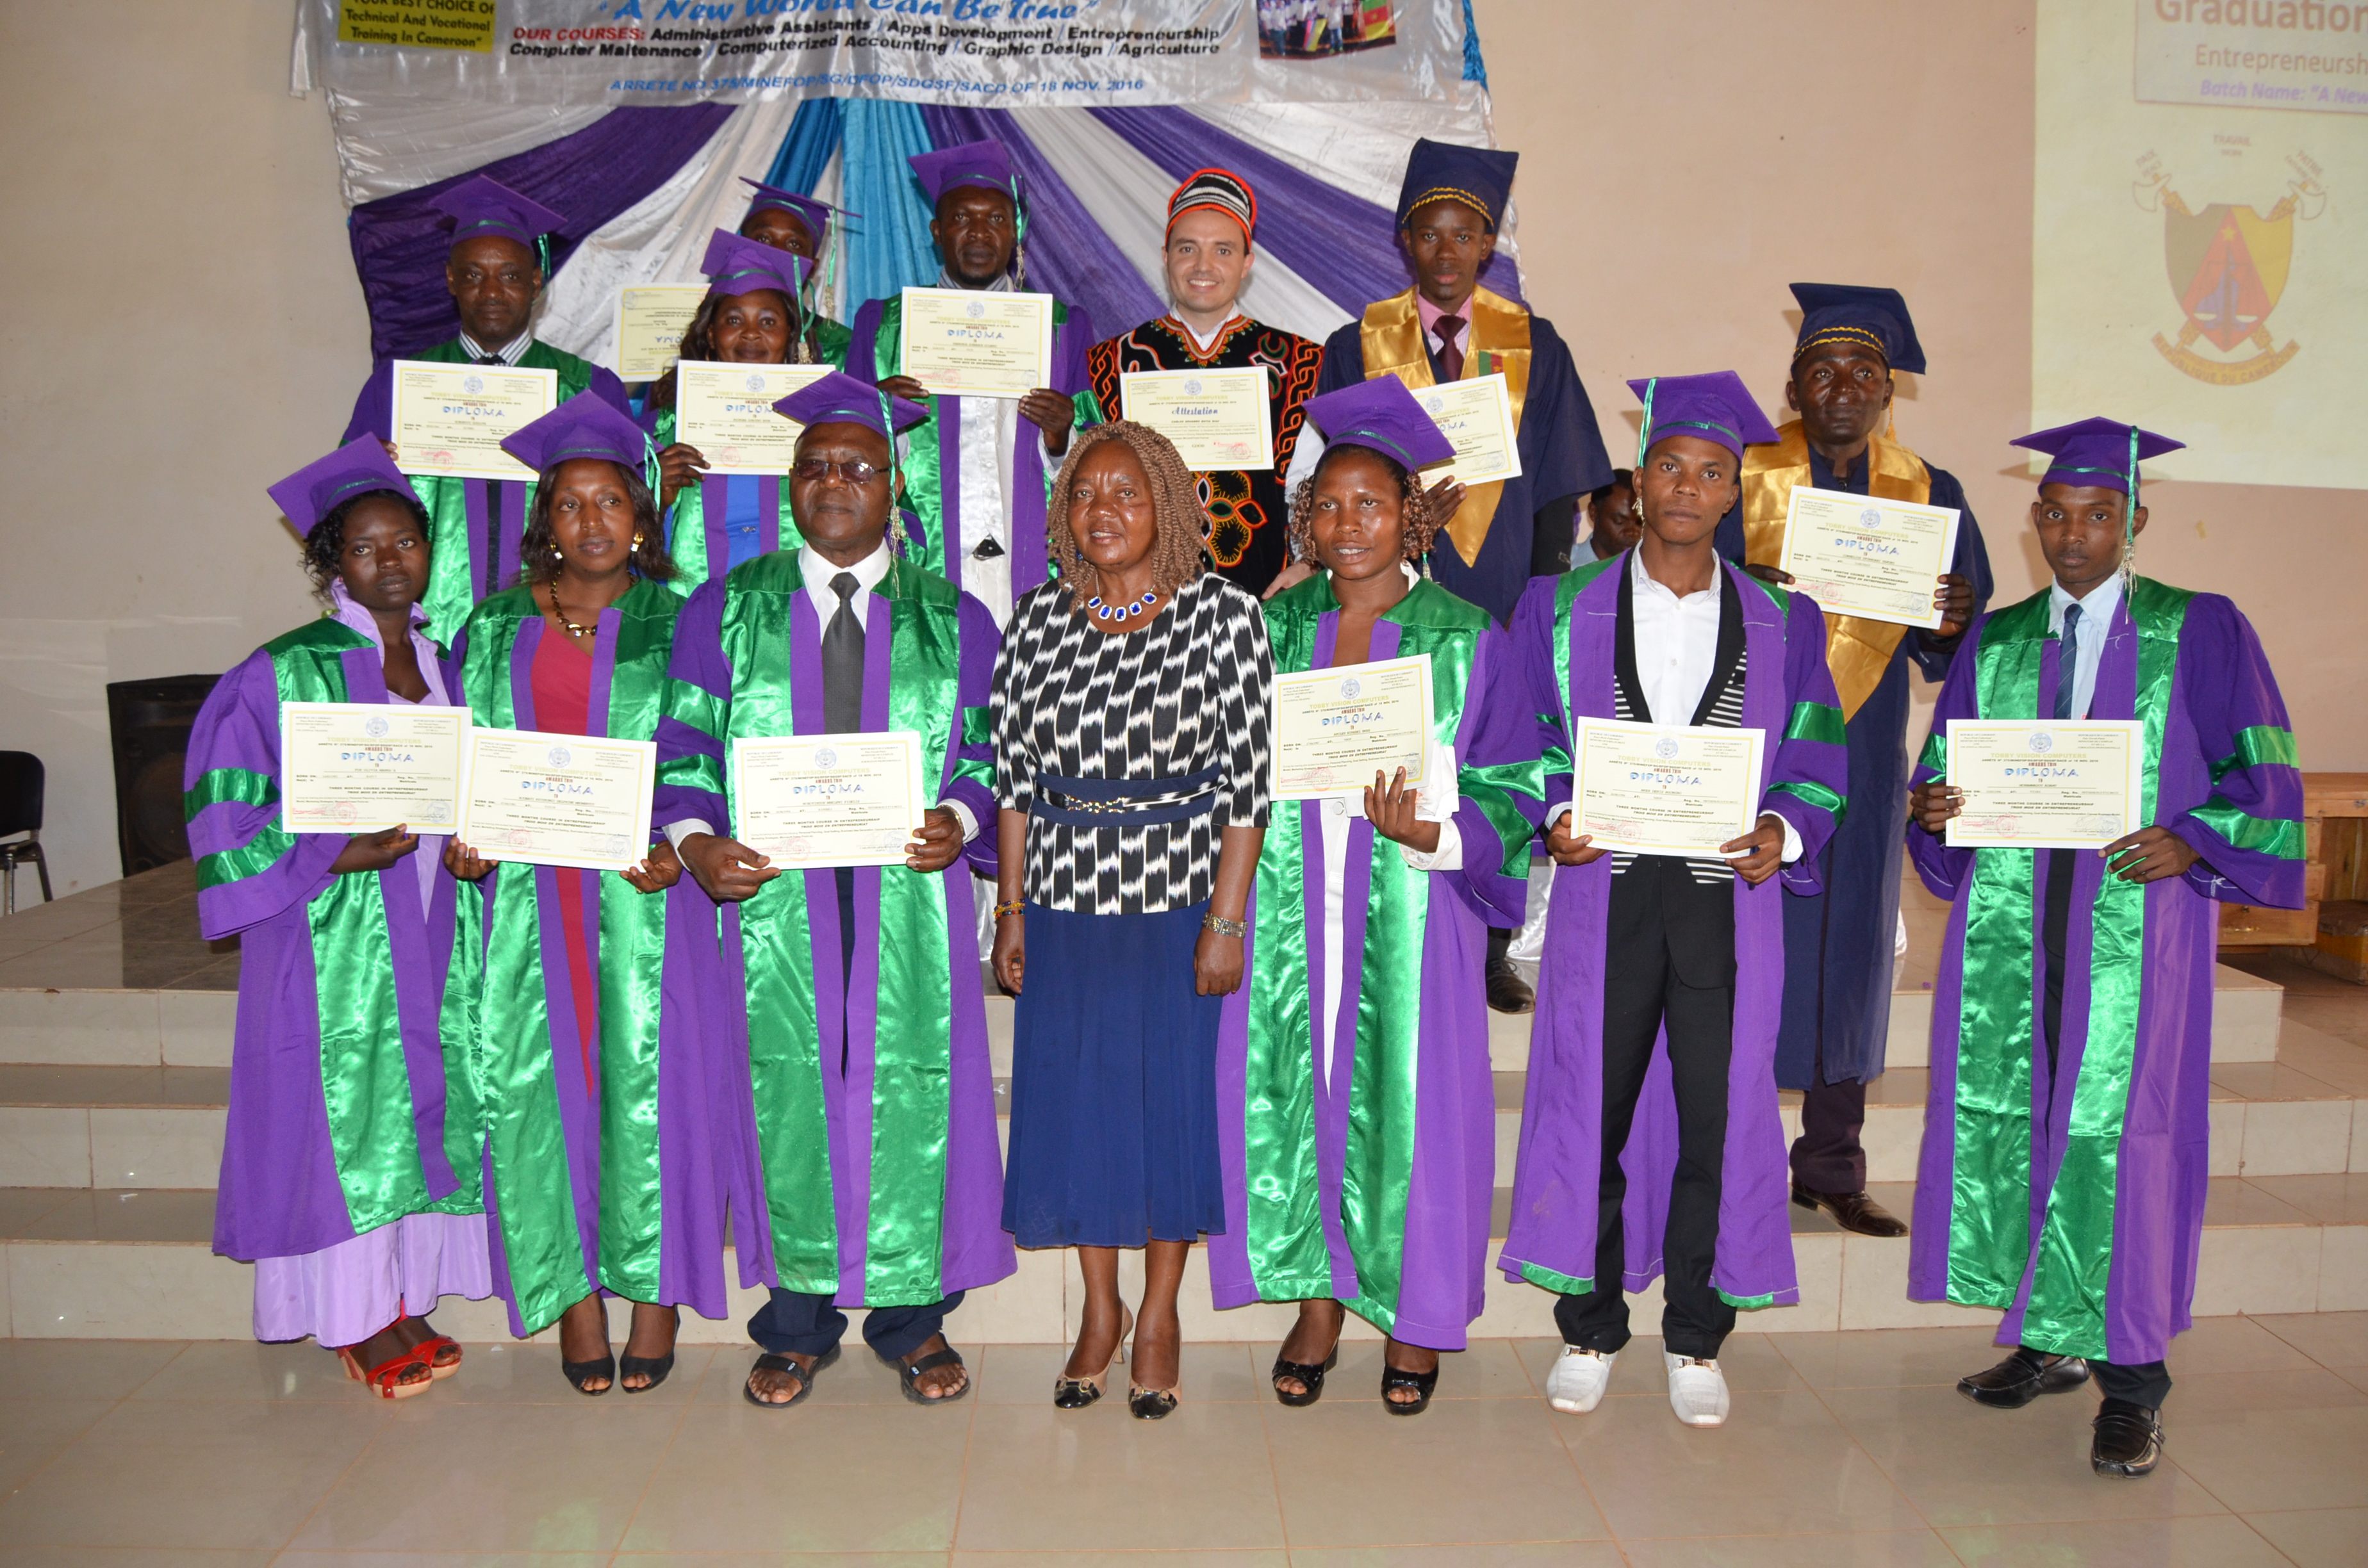 The proud graduates of the Tobby Vision Entrepreneurship Course.